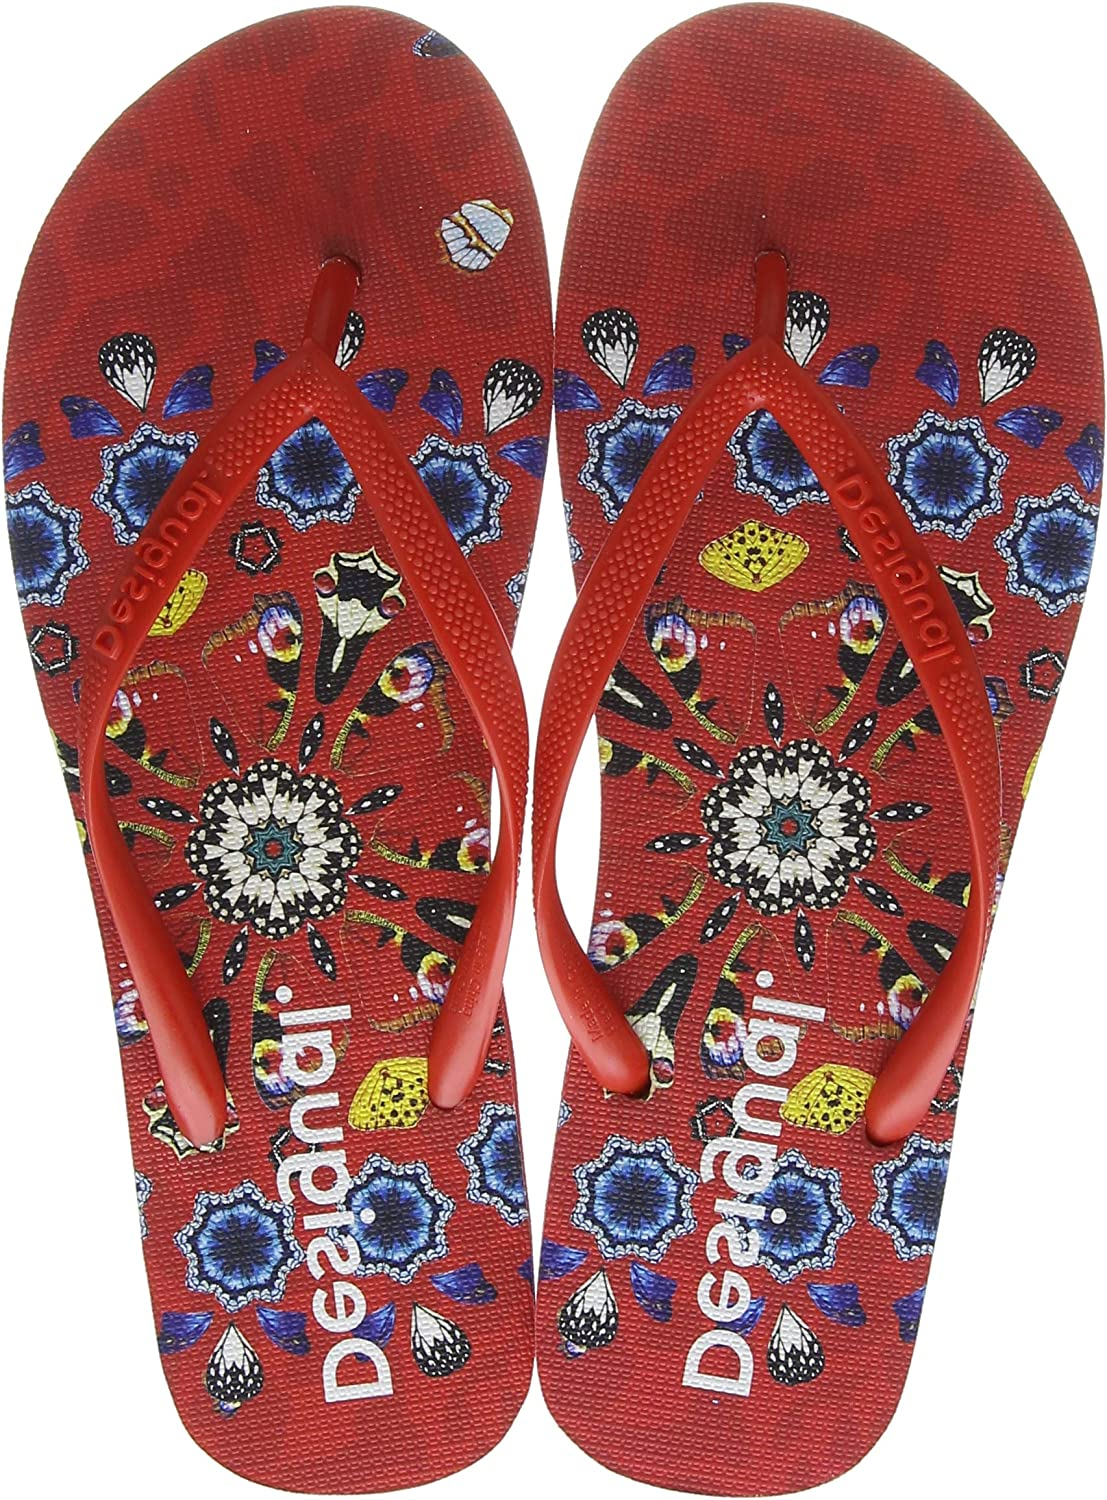 Desigual Women's Indefinitely Watershoes Beach Now free shipping